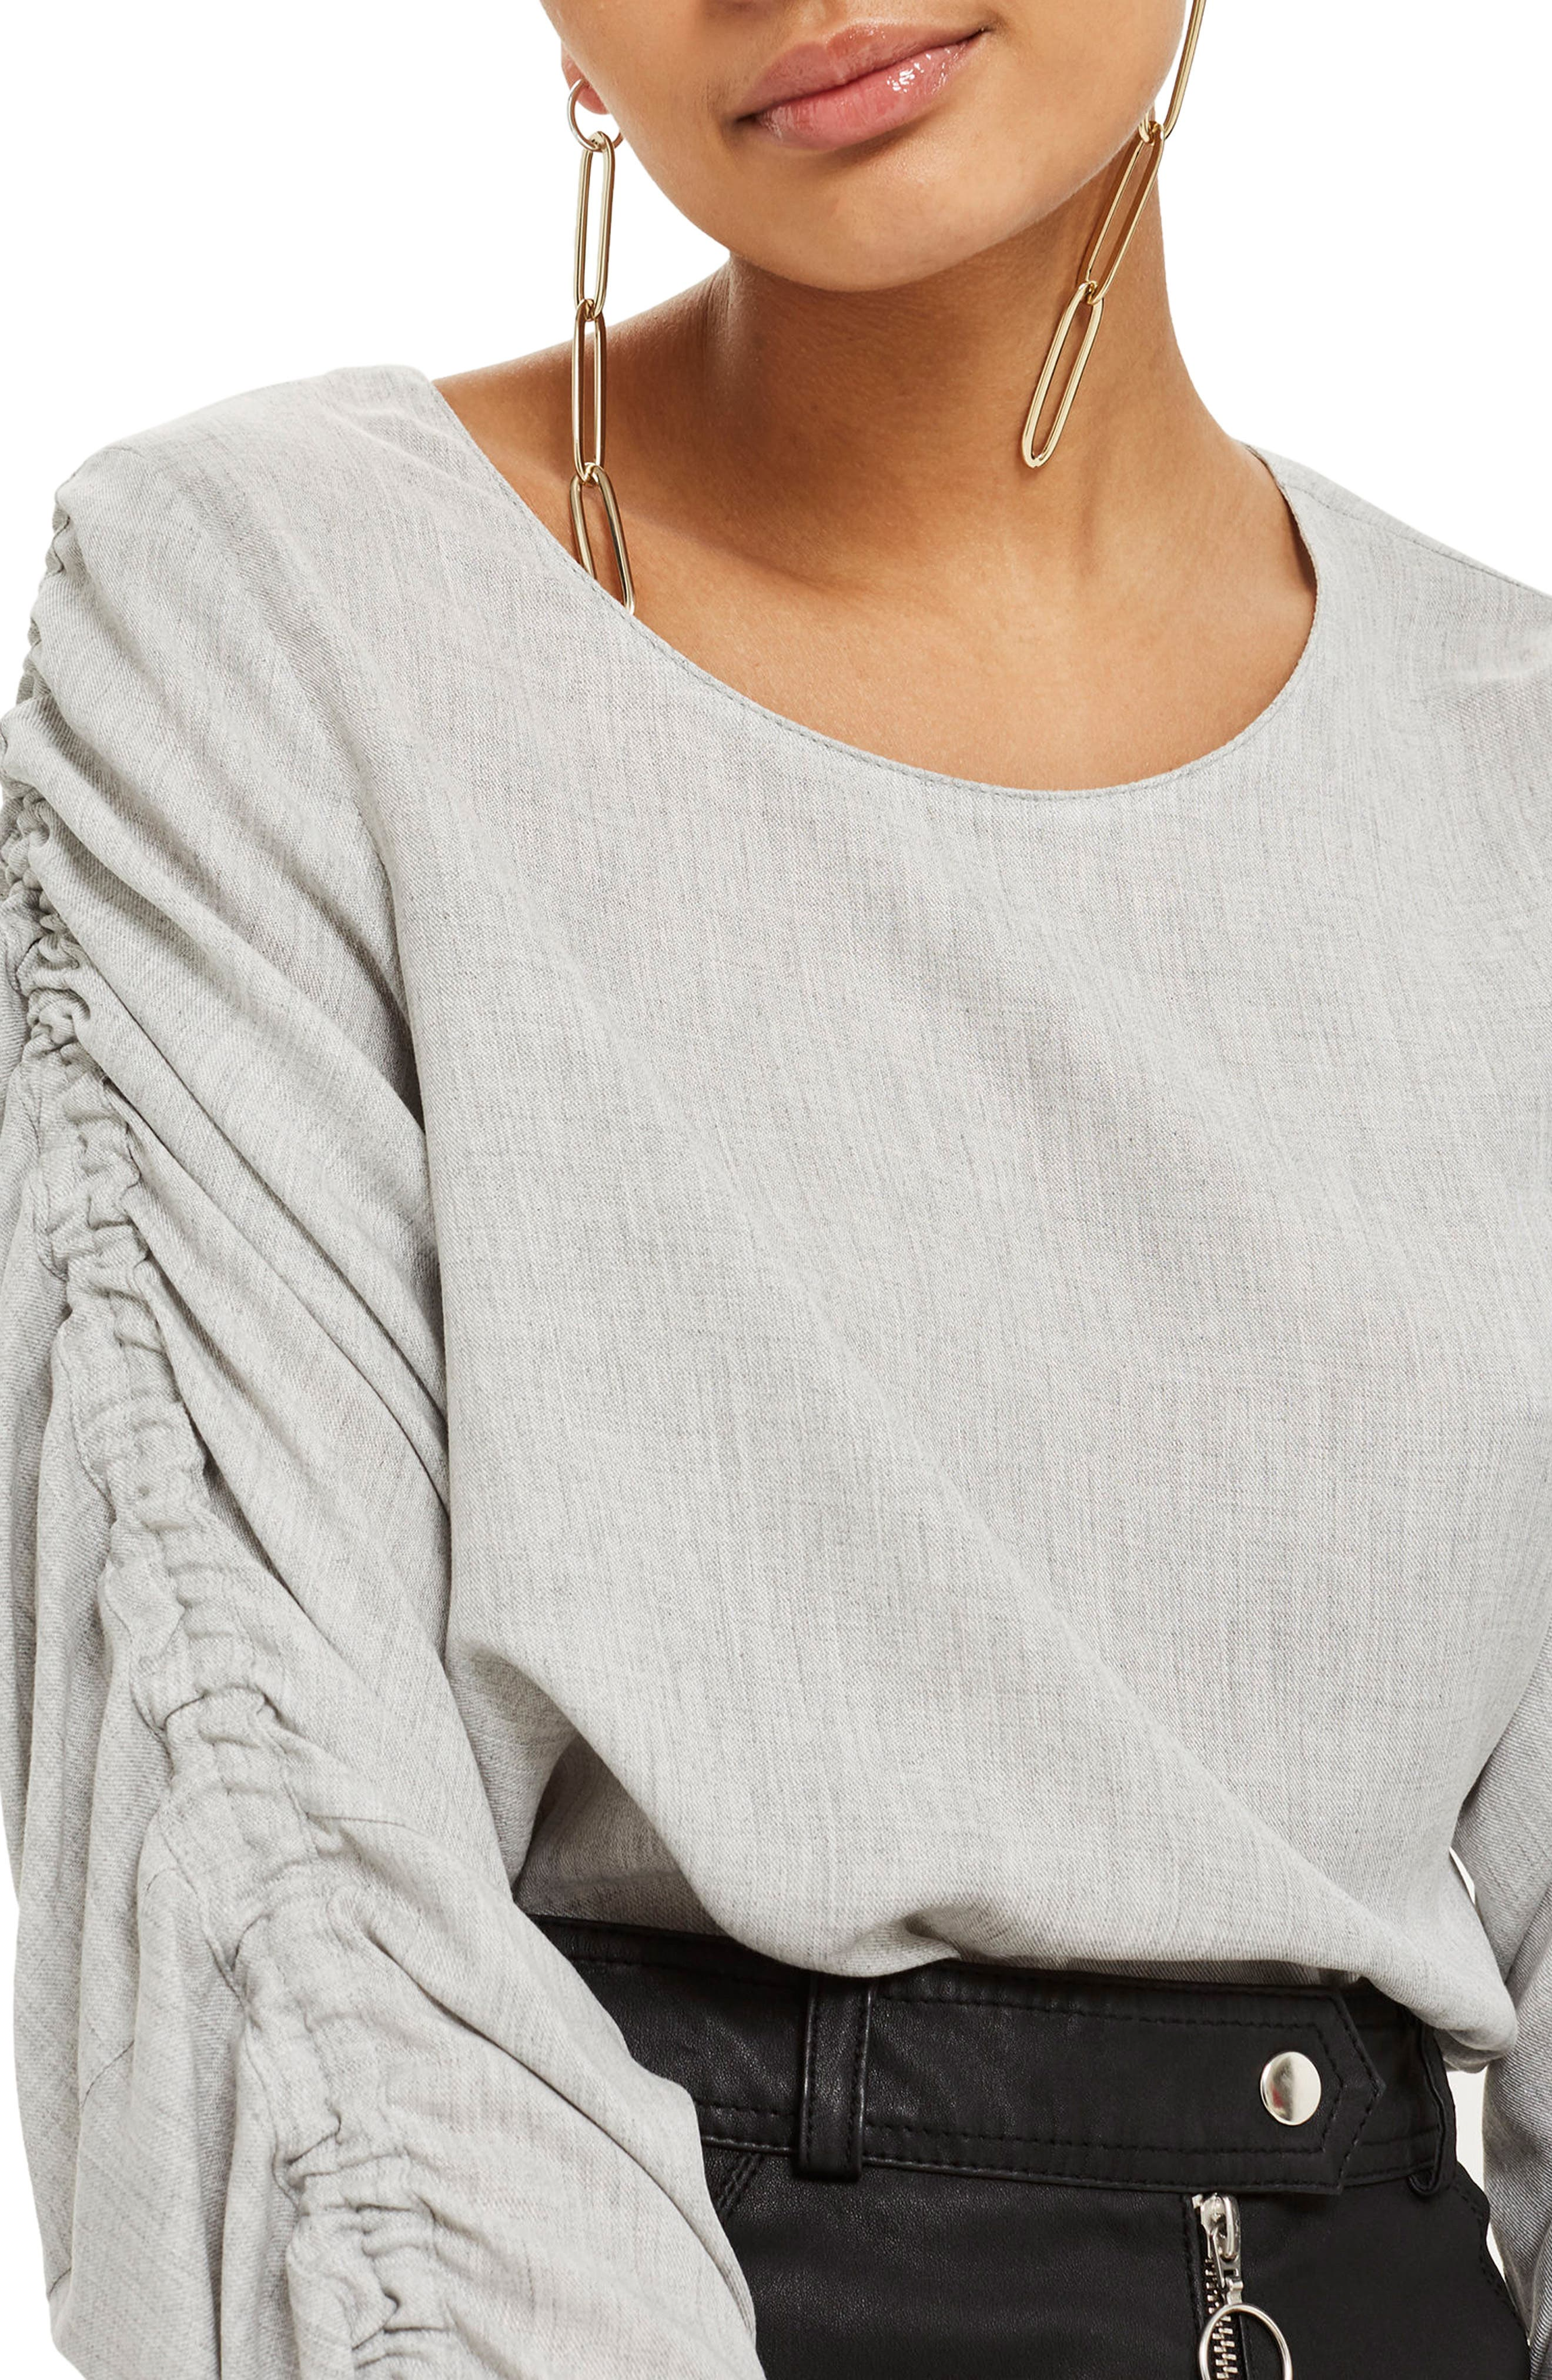 Ruched Sleeve Shirt,                         Main,                         color, 020